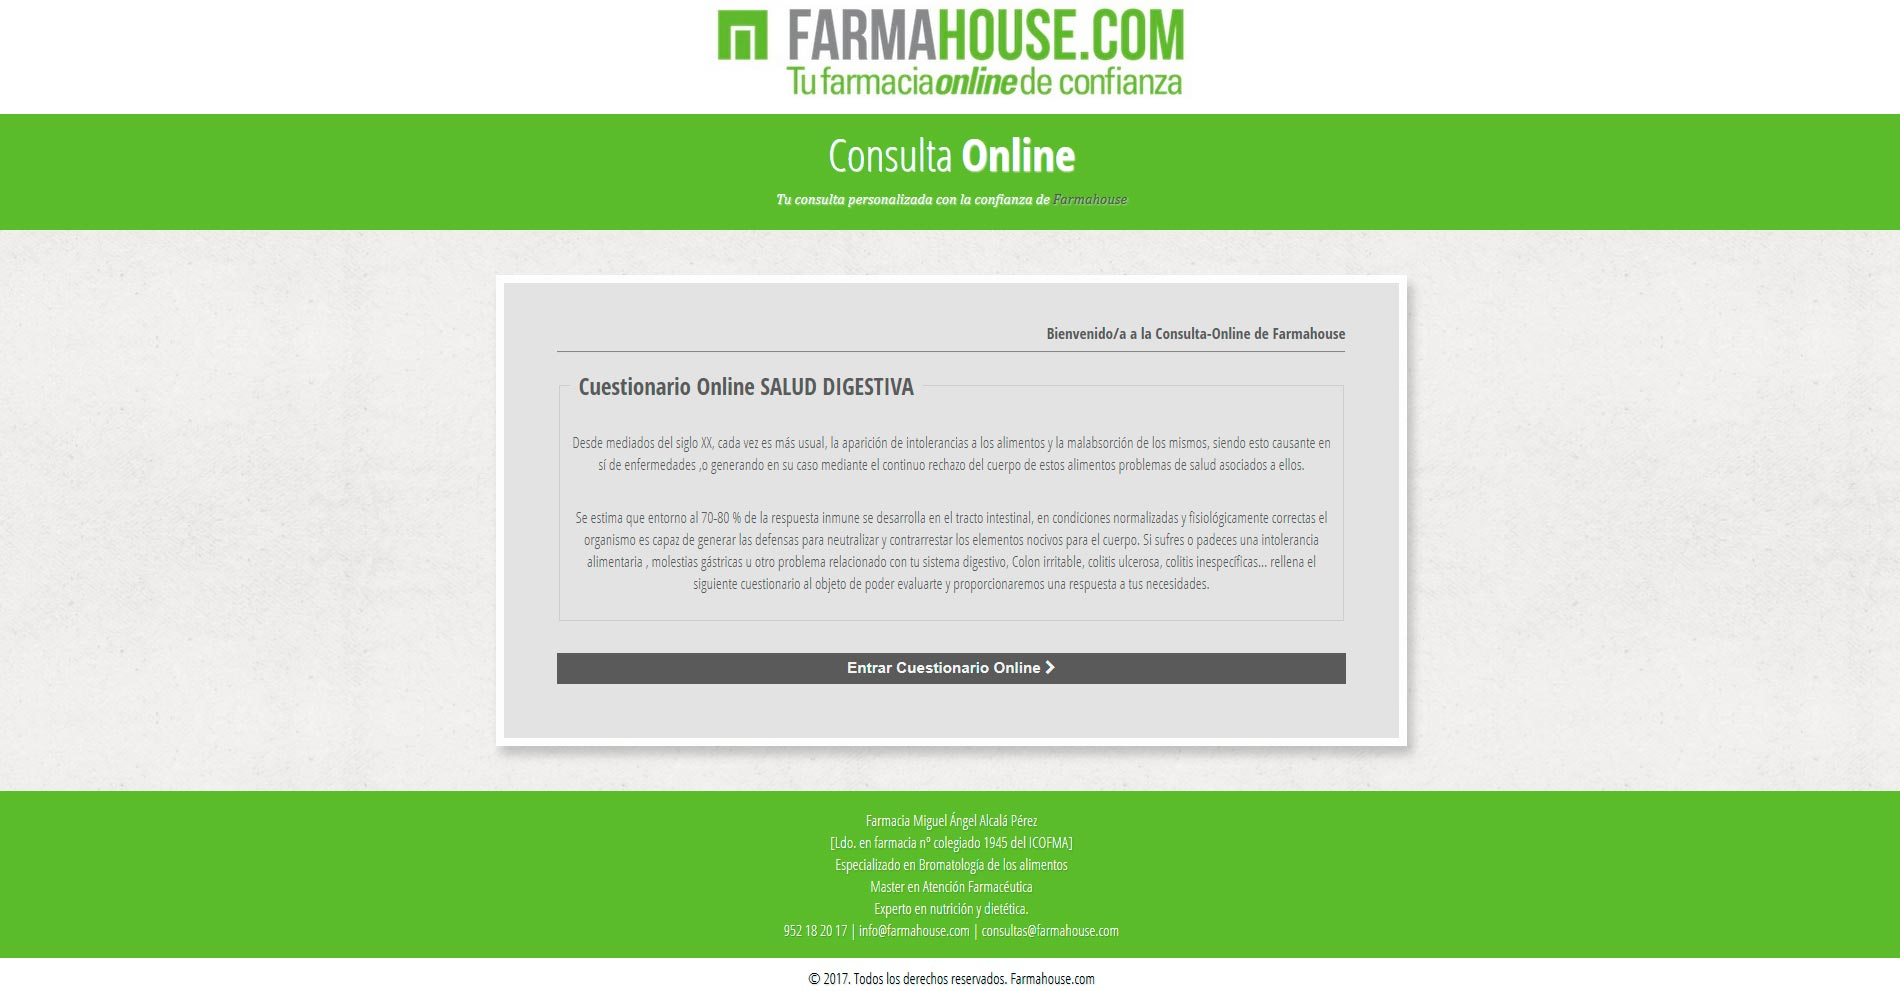 farmahousecom